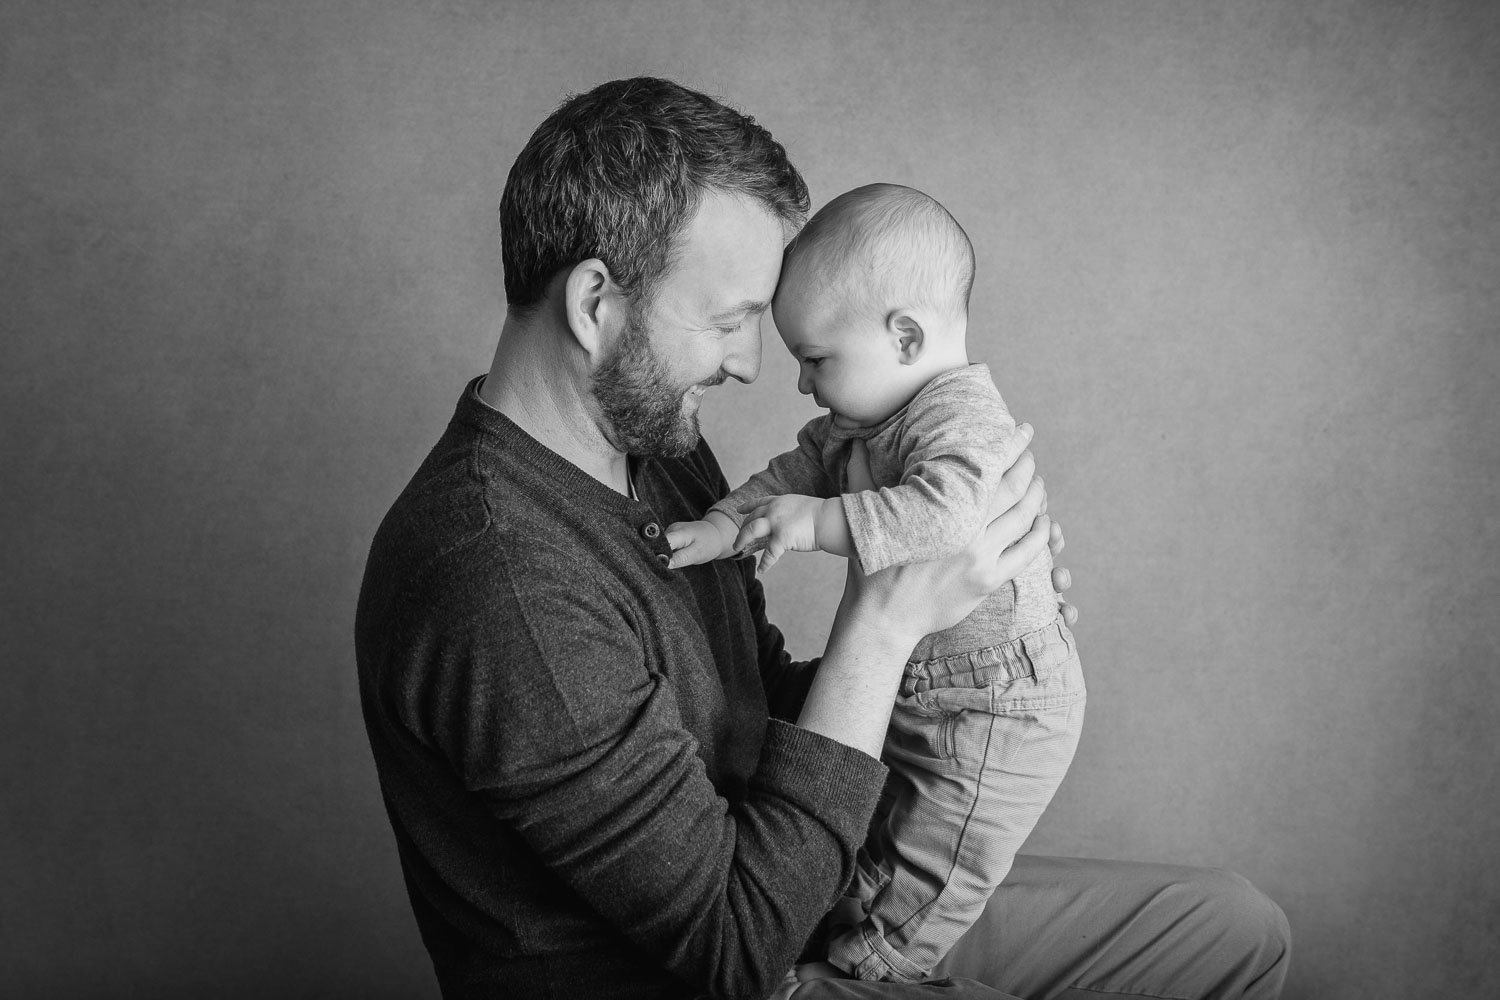 dad and baby photograph by siobhan kelly photography